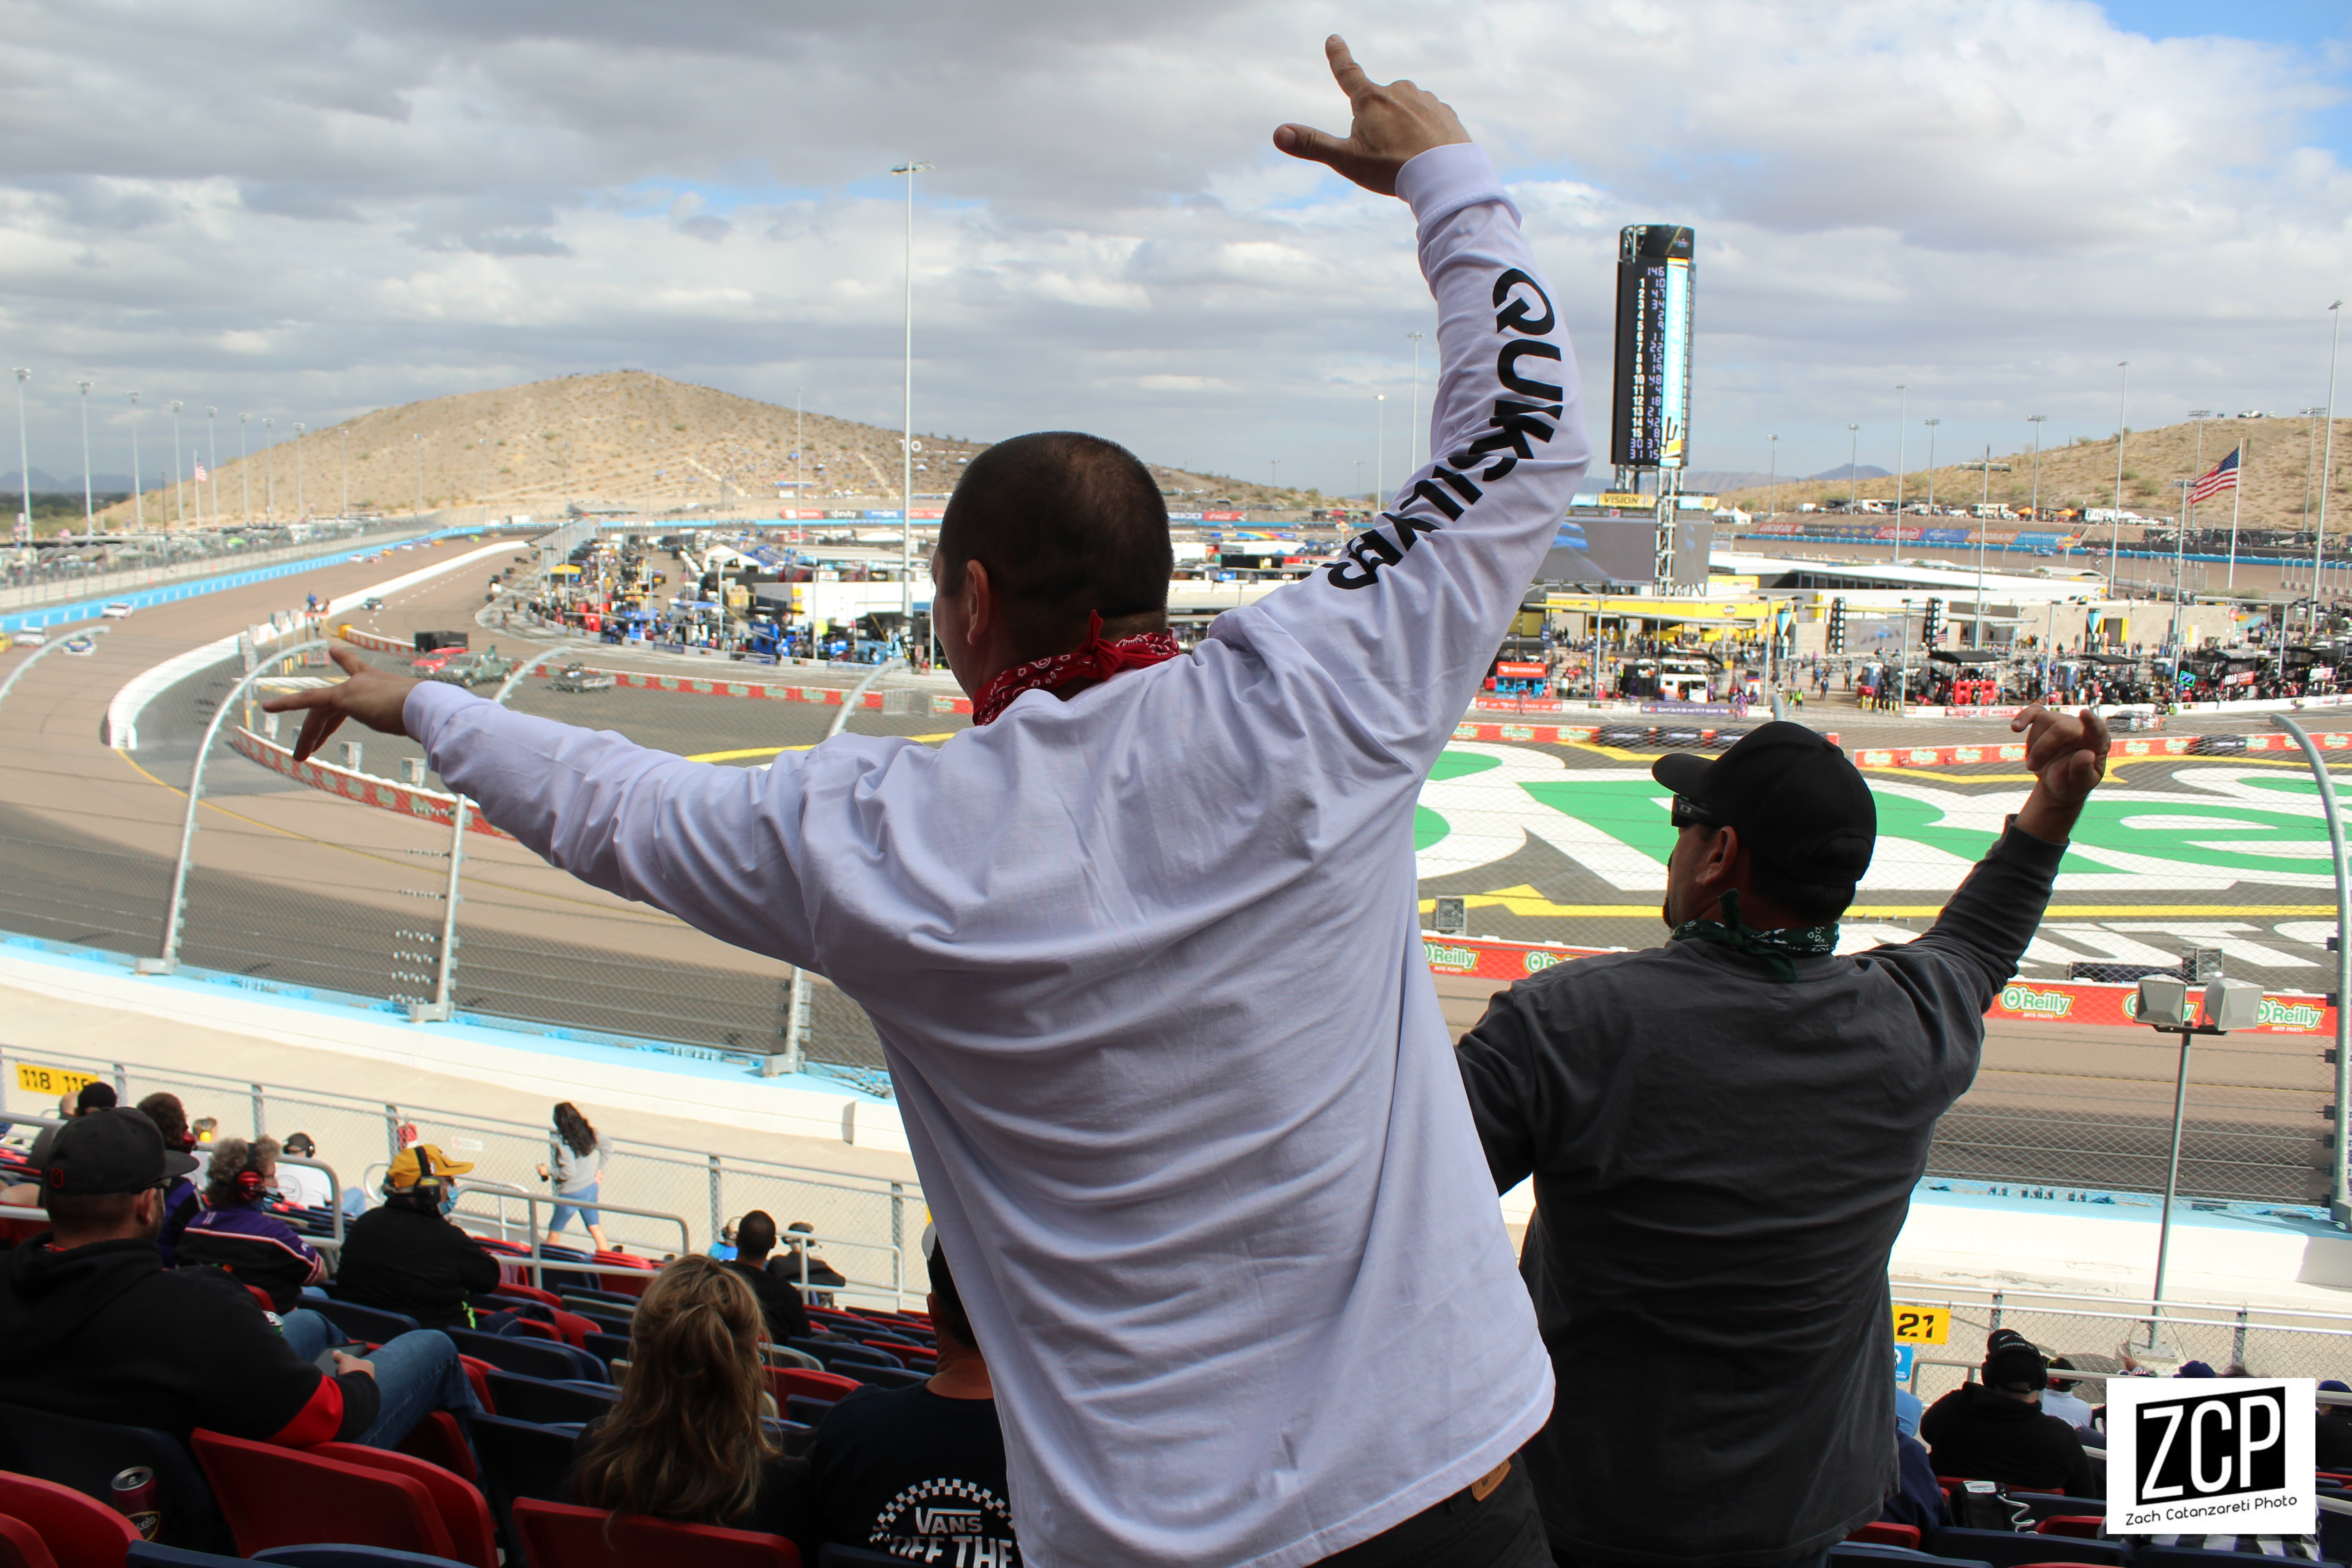 Fans cheer a racing event.